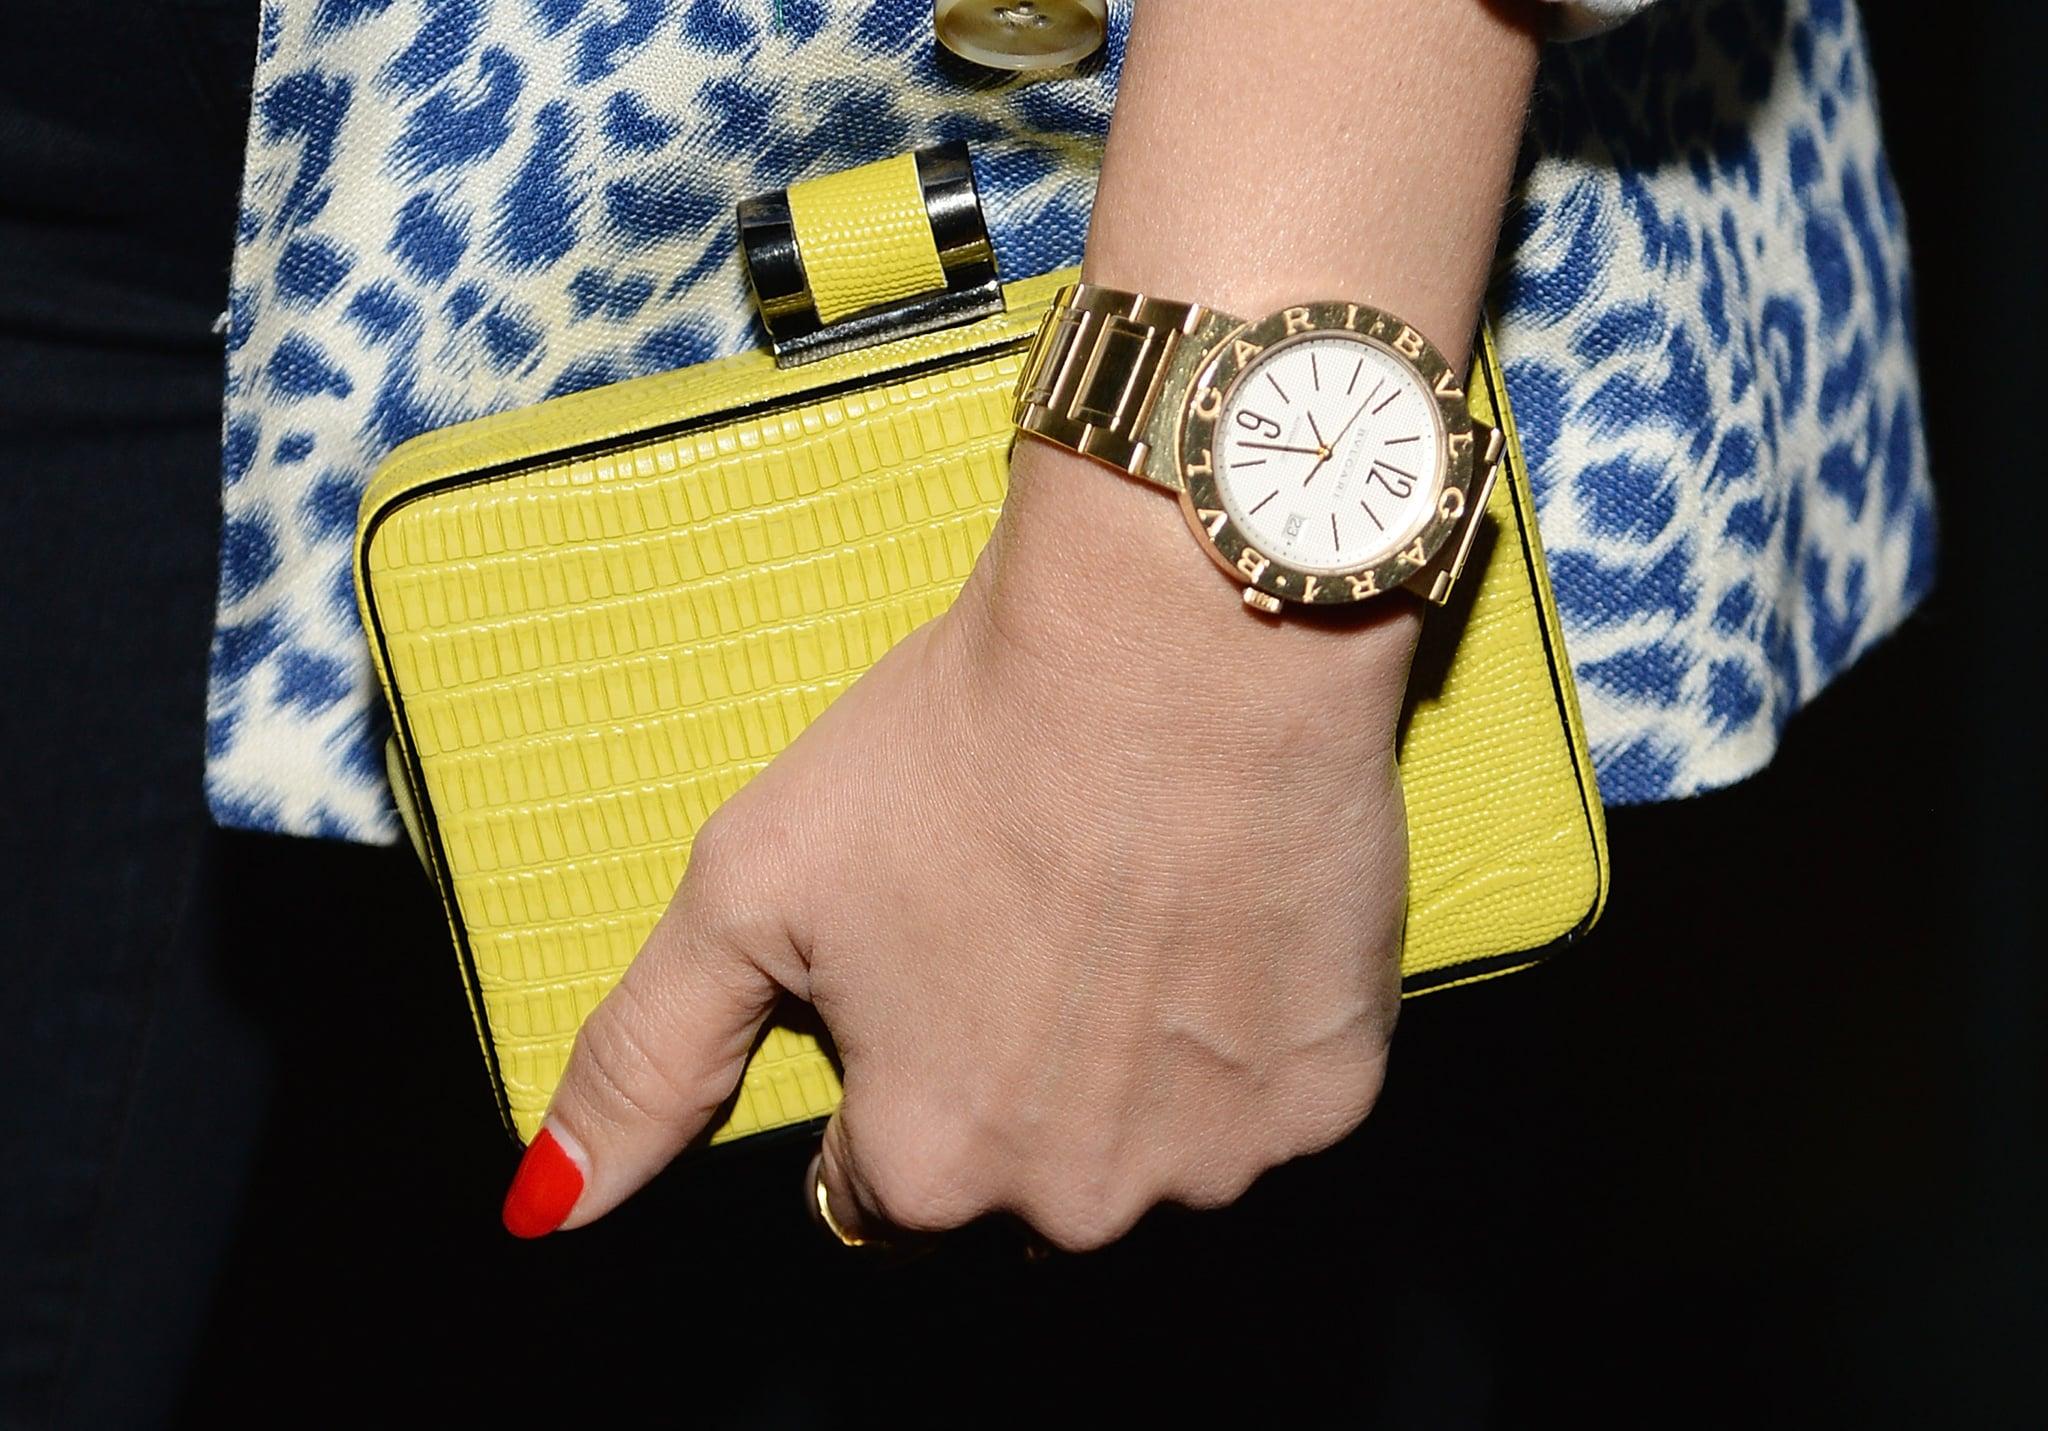 Jessica's bright clutch contrasted the blue hue of her jacket perfectly, and an oversize gold Bulgari watch was a piece that made a statement without overpowering.